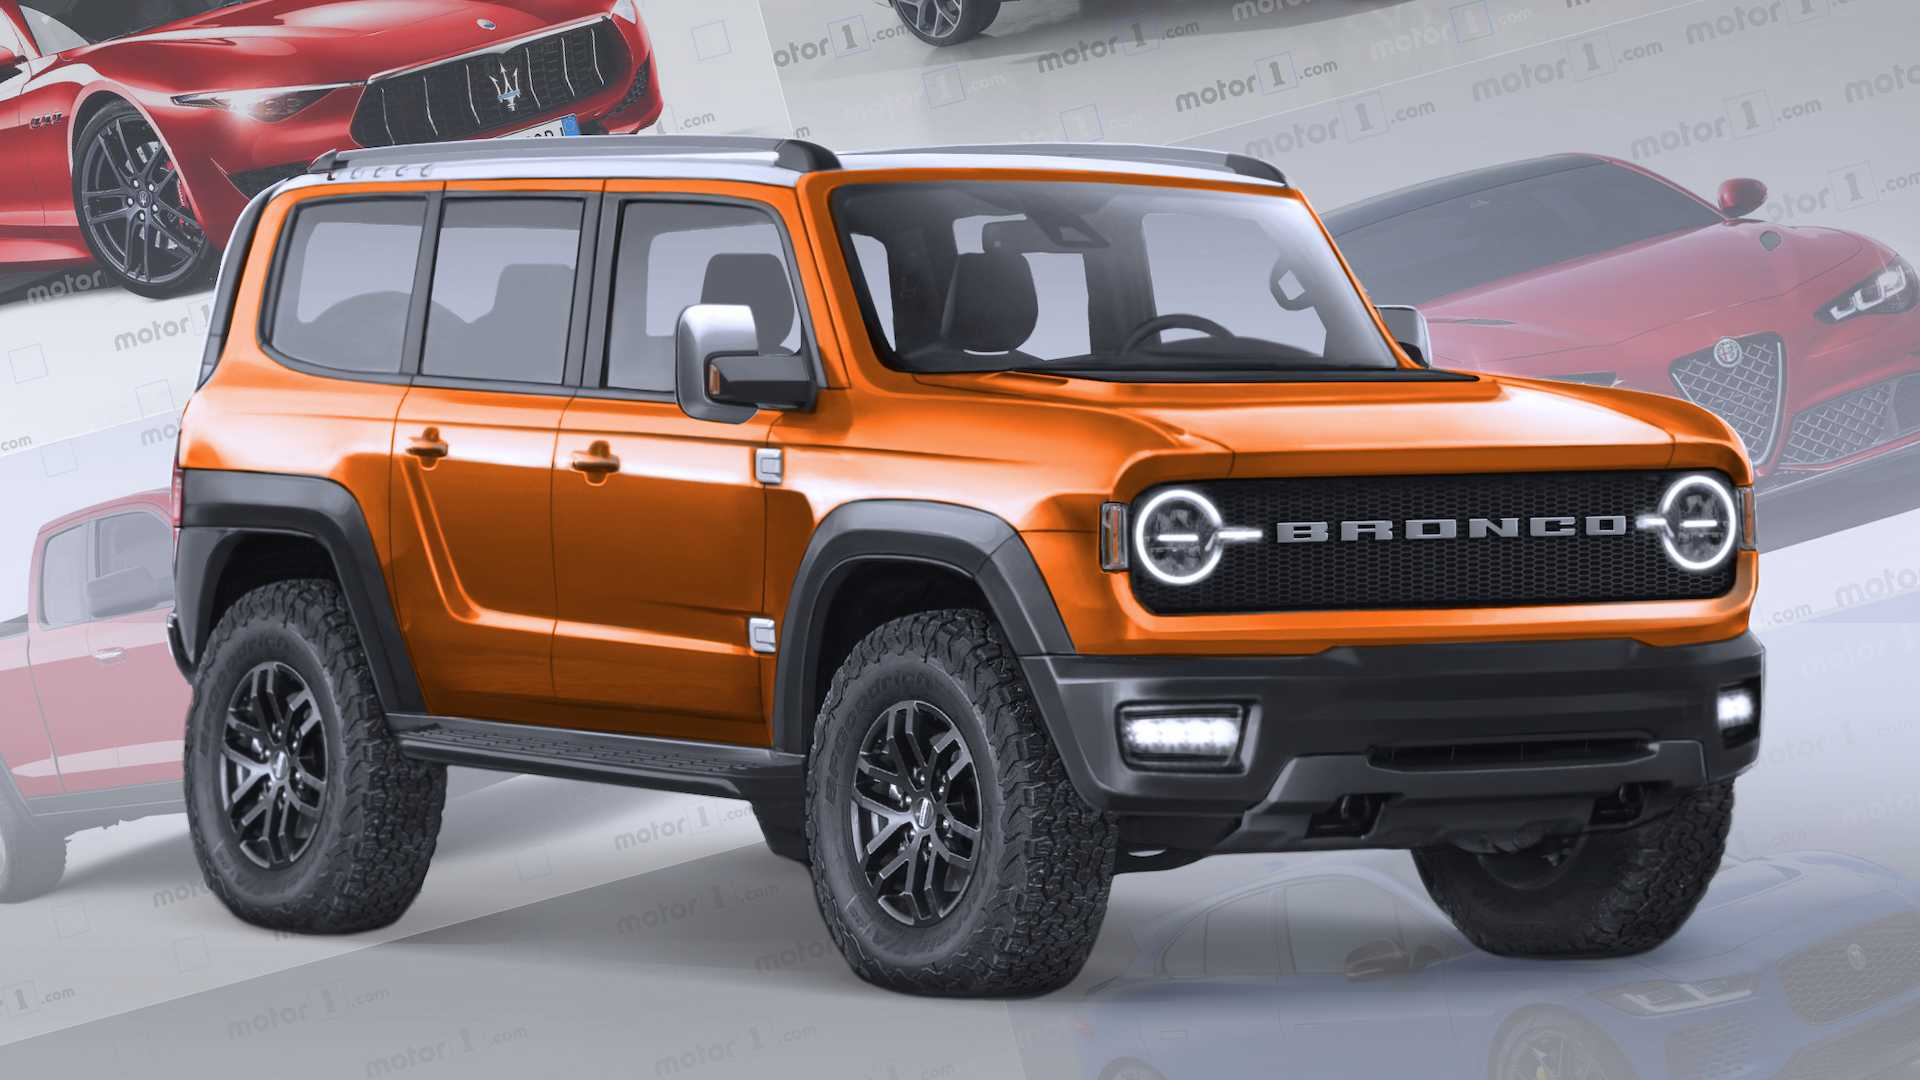 Best Suv 2021 Usa 2021 New Models Guide: 30 Cars, Trucks, And SUVs Coming Soon